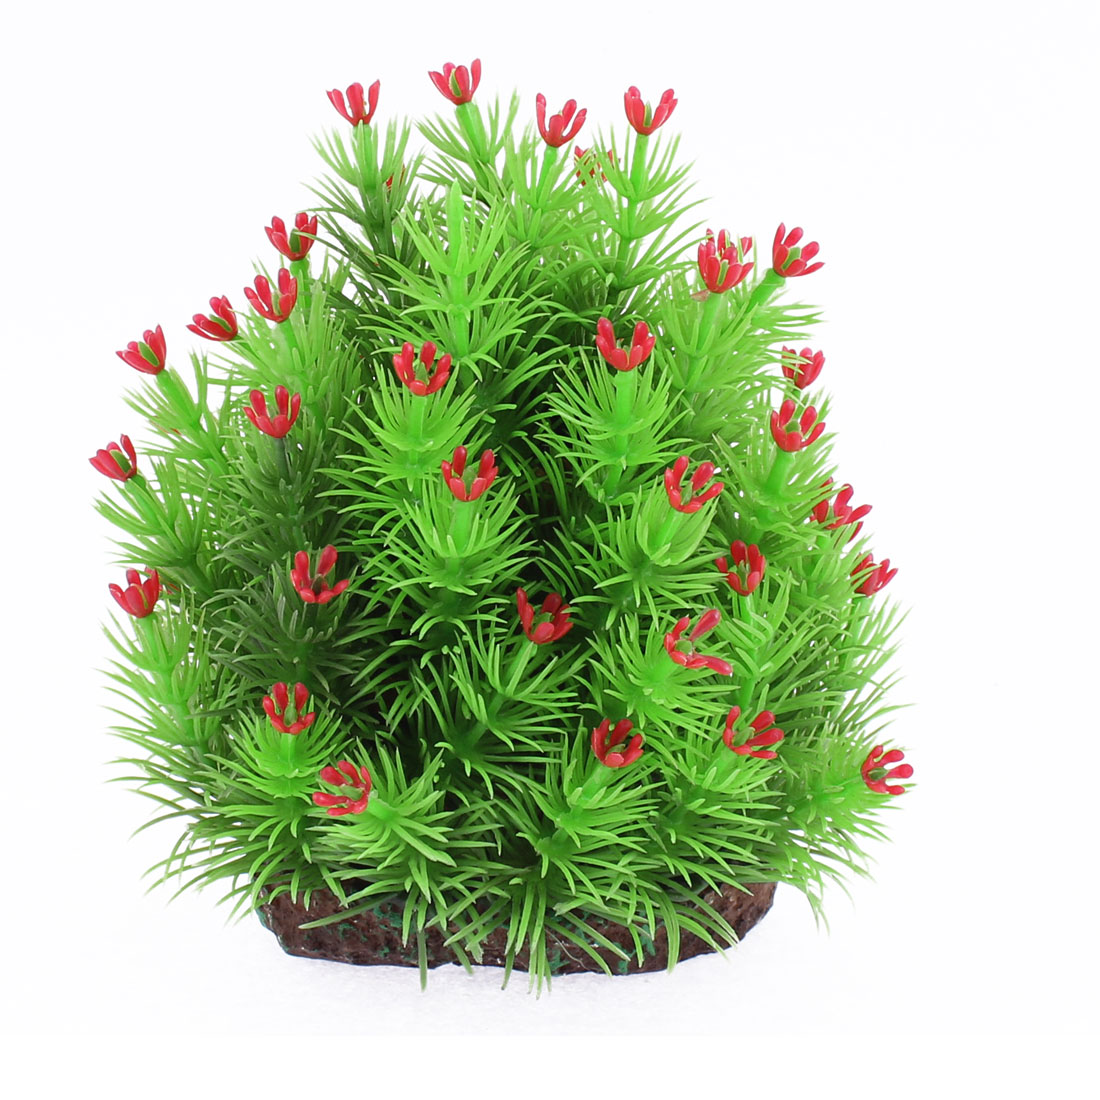 Aquarium Fishbowl Plastic Imitated Underwater Plant Grass Adornment Green Red